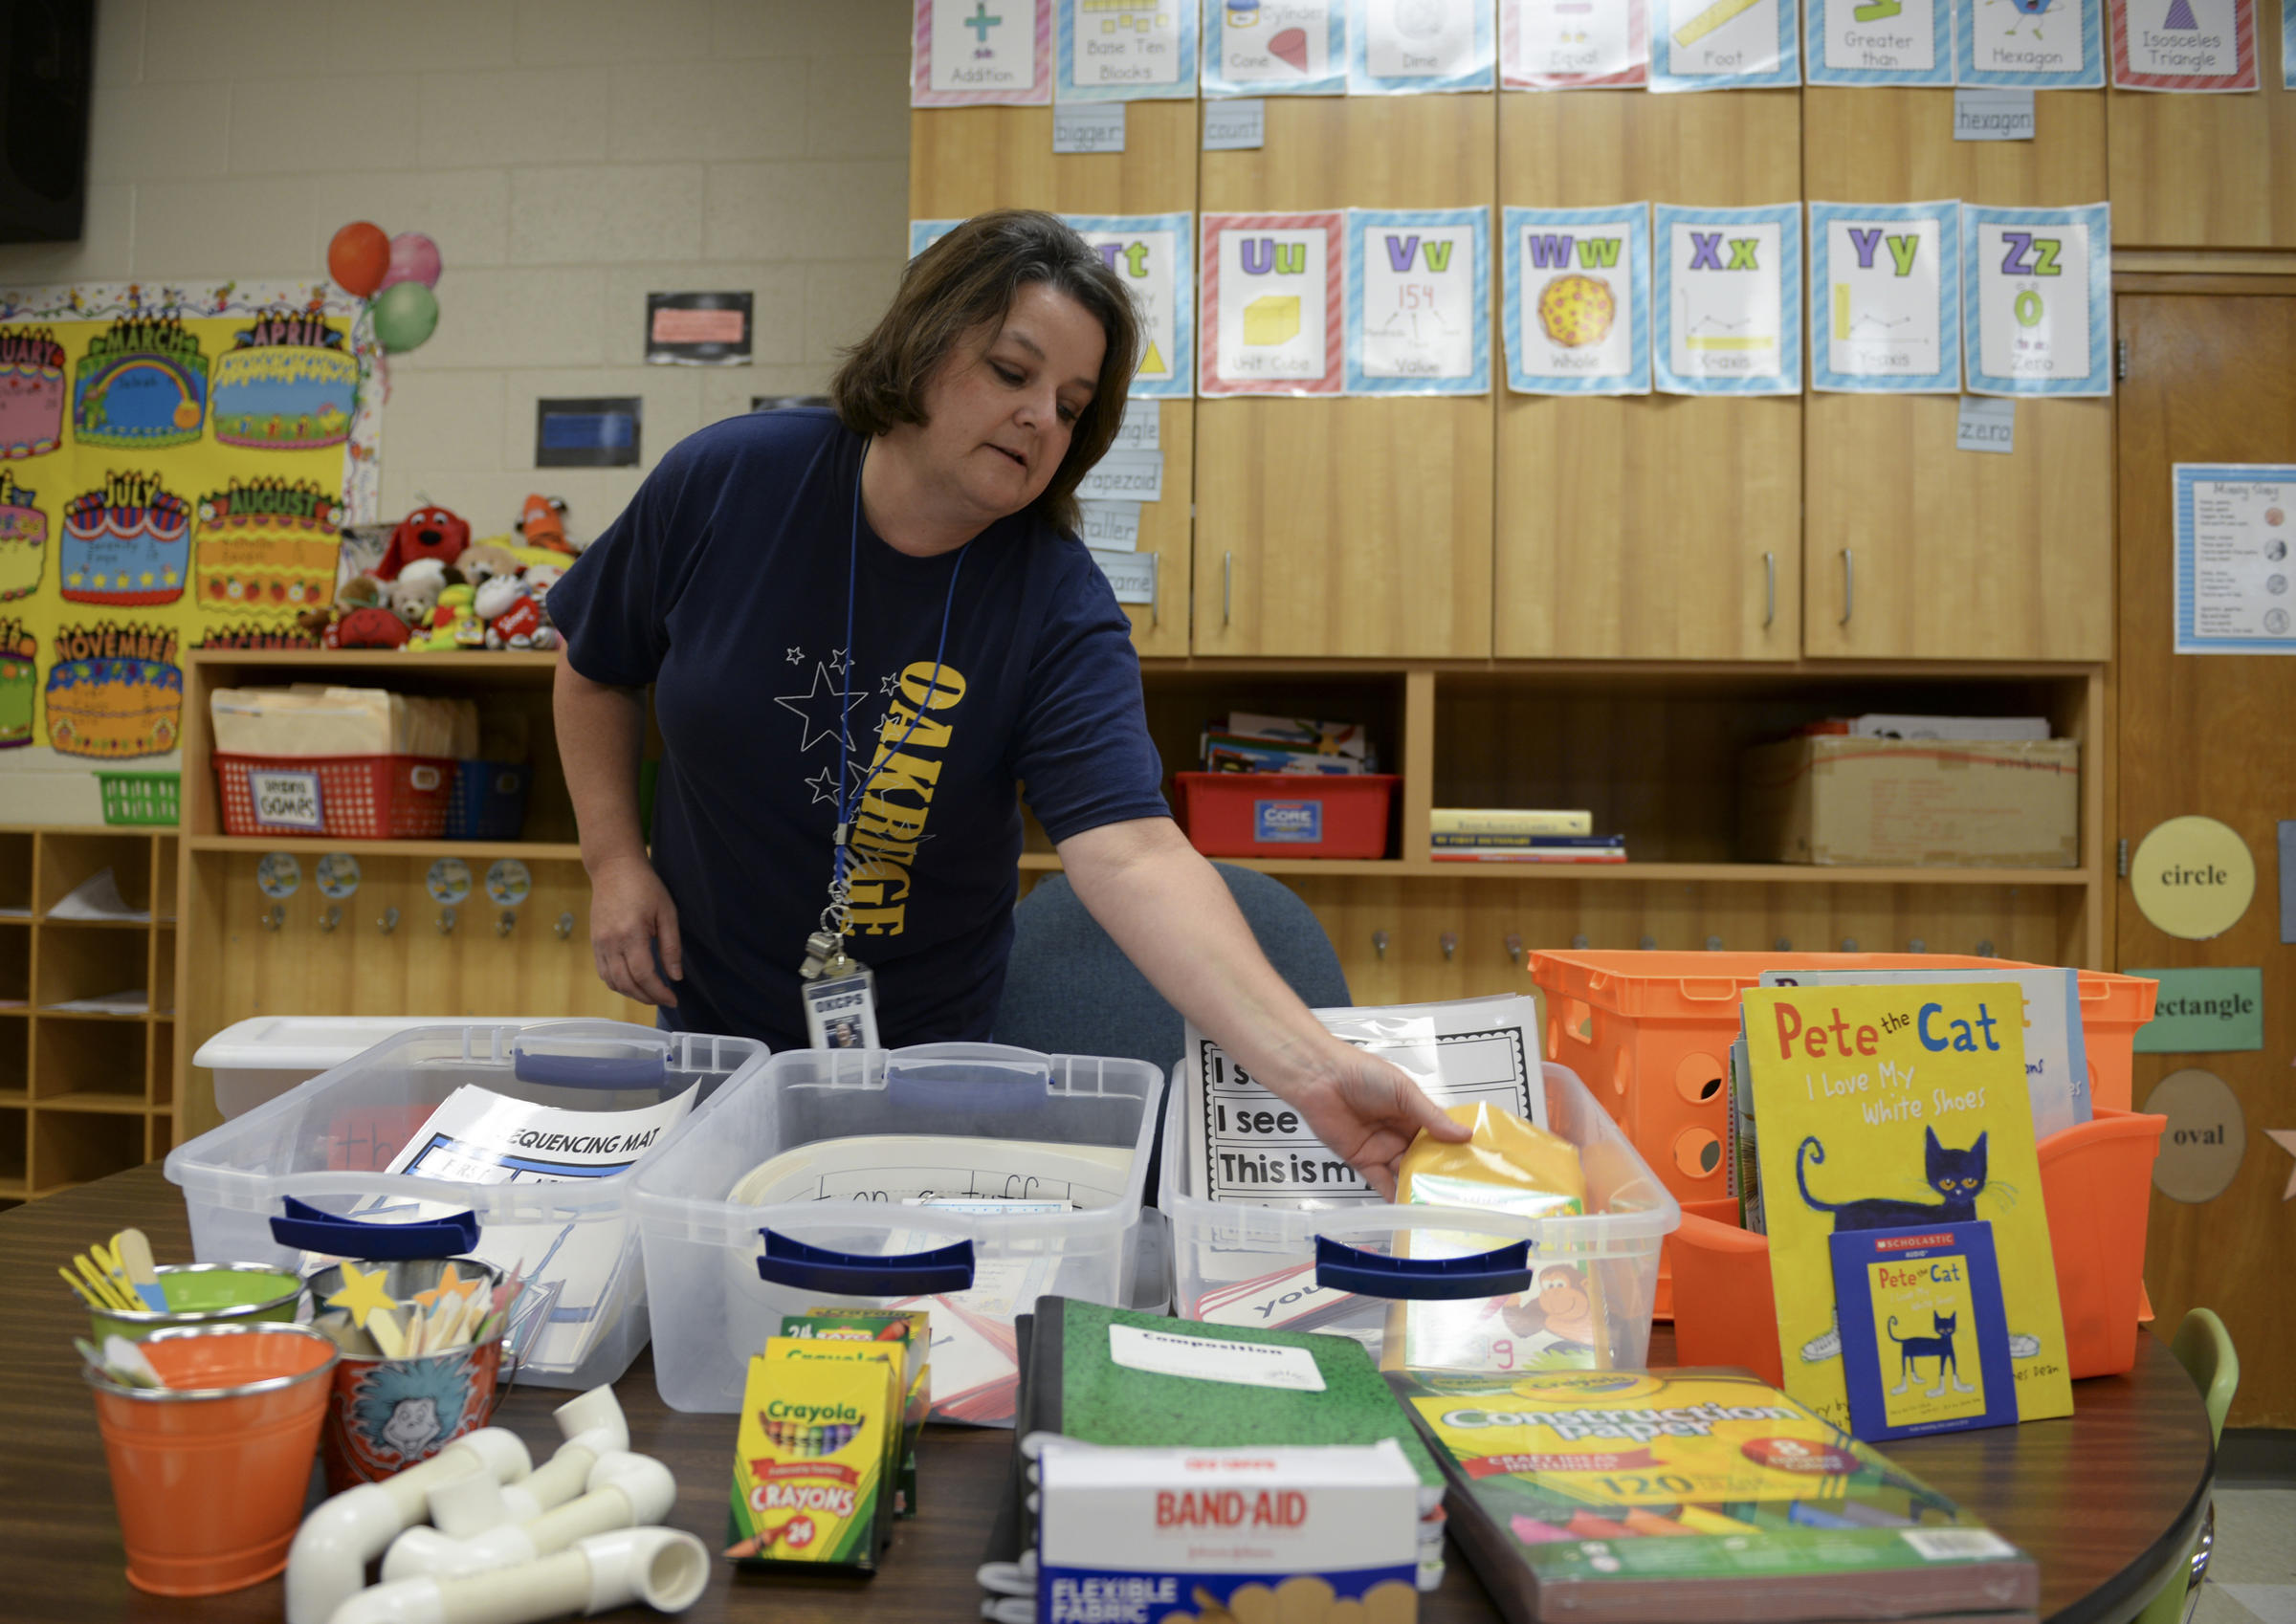 Oklahoma Teachers Expected To Spend Hundreds On Classroom Supplies